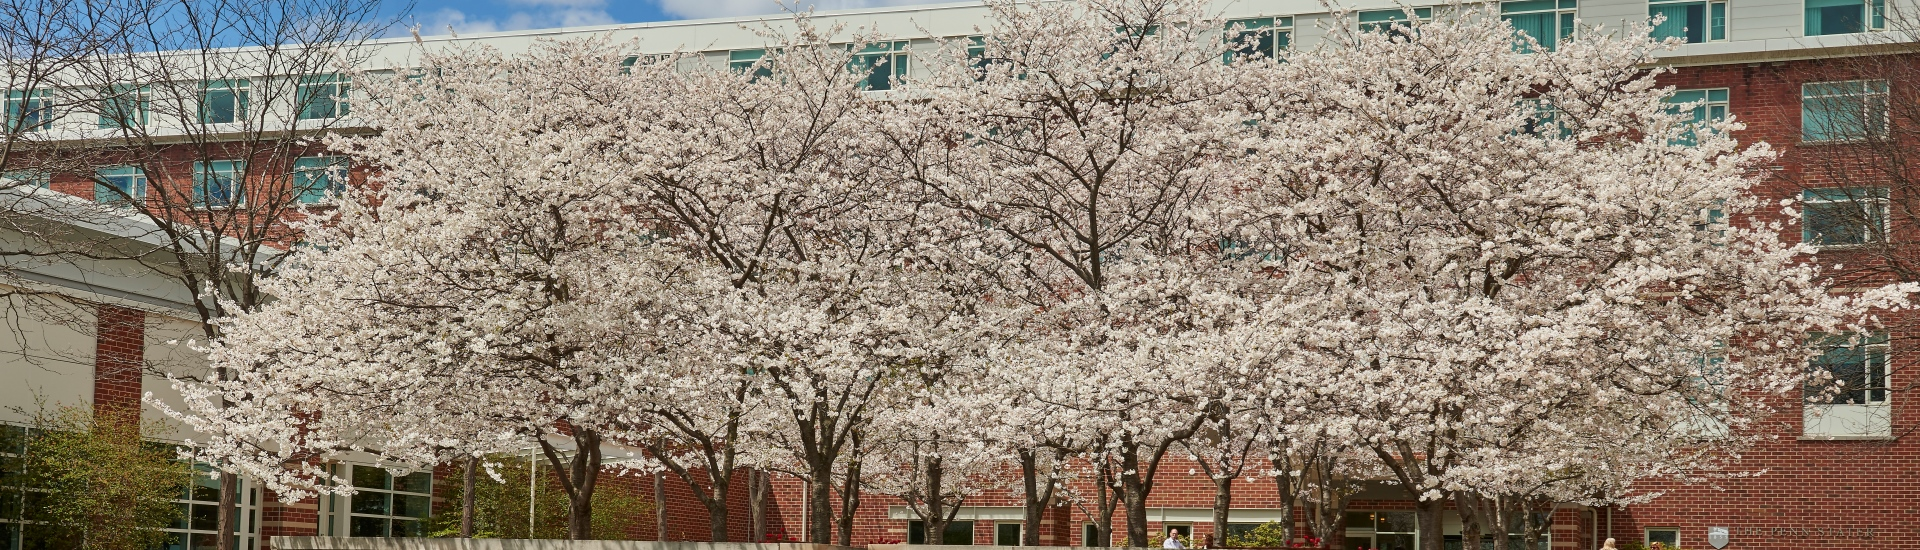 Penn State Calendar Spring 2020 2020 Spring Commencement | The Penn Stater Hotel & Conference